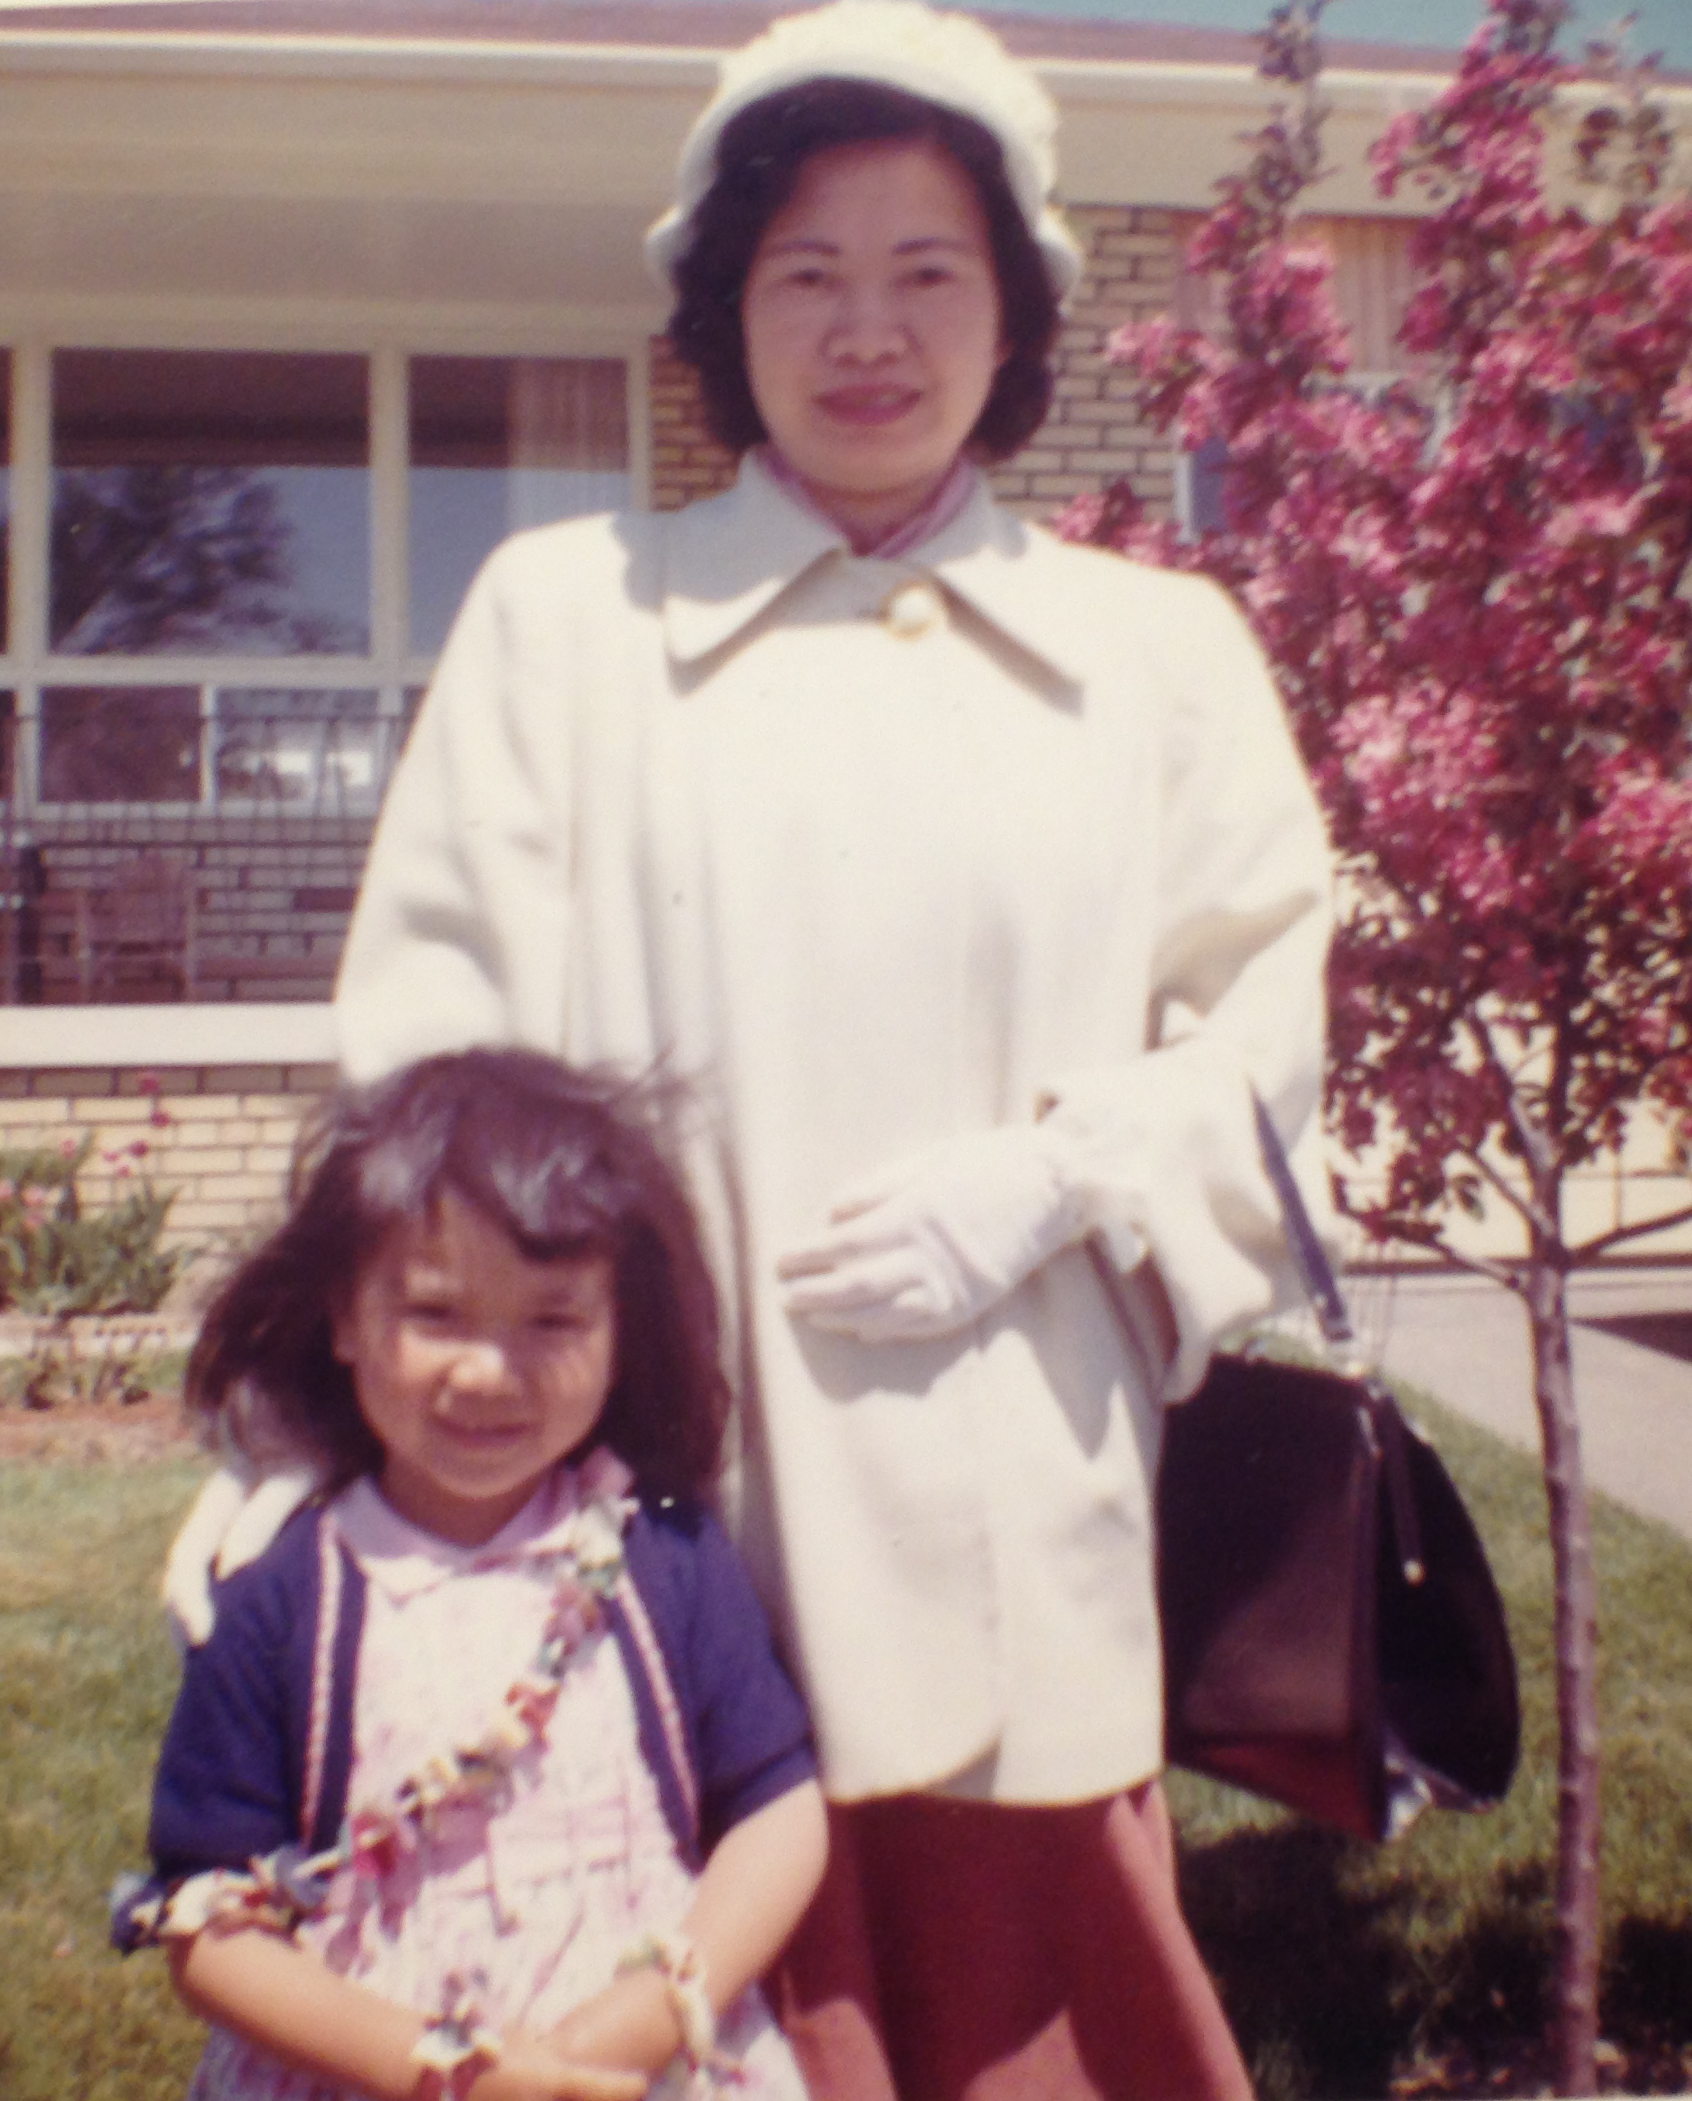 Brenda Joy Lem as a small girl posing in front of a house with her mother, a tree is flowering in the background